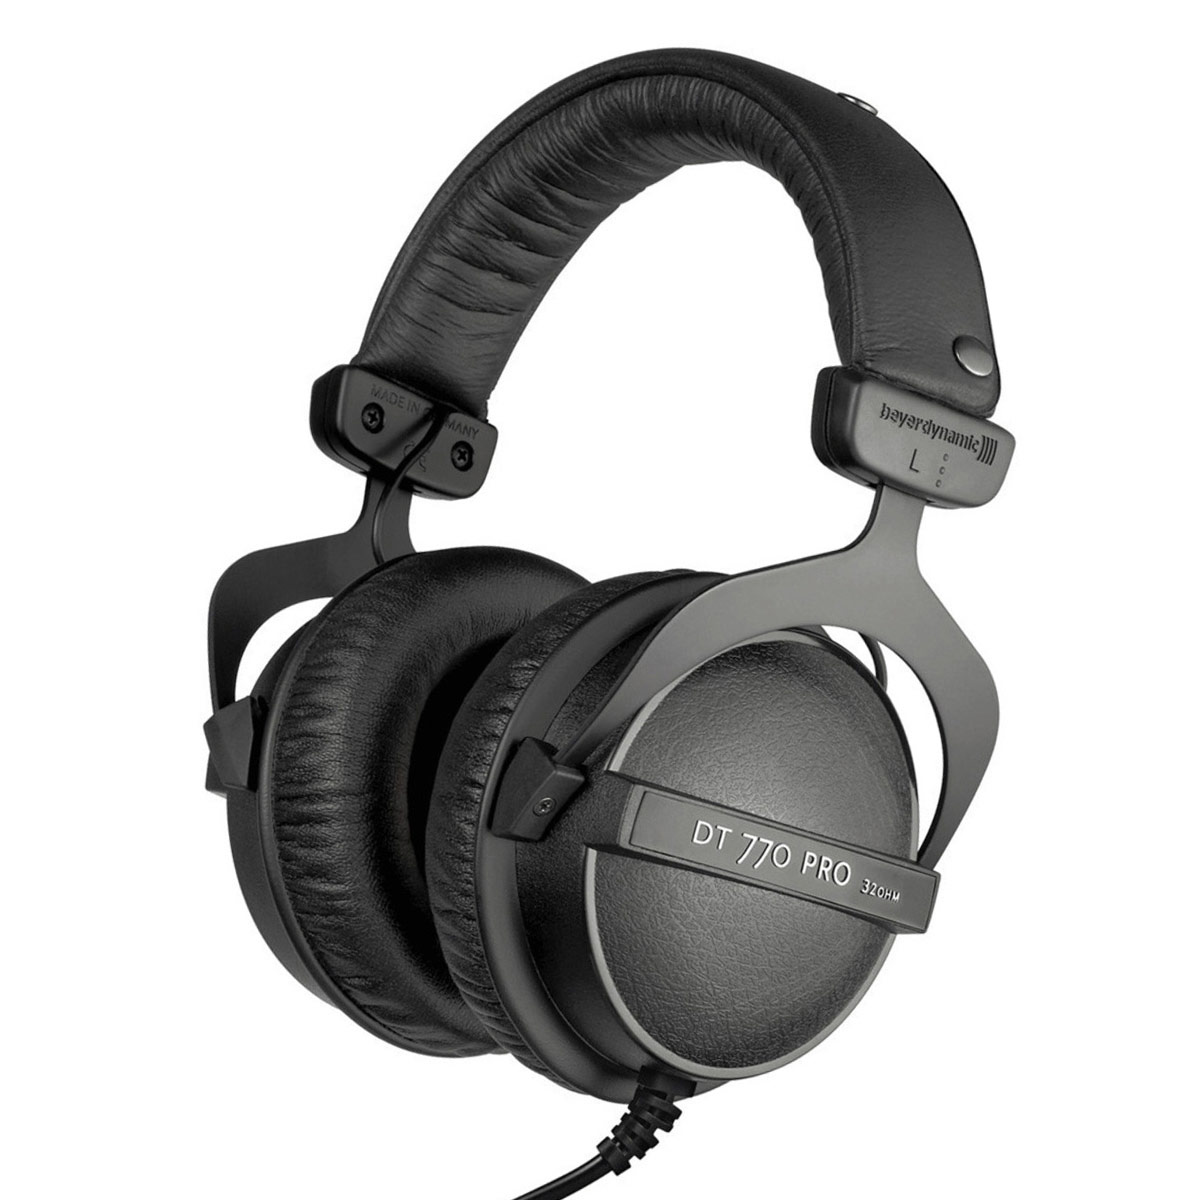 Beyerdynamic DT 770 Pro Closed Headphones (32 Ohm)